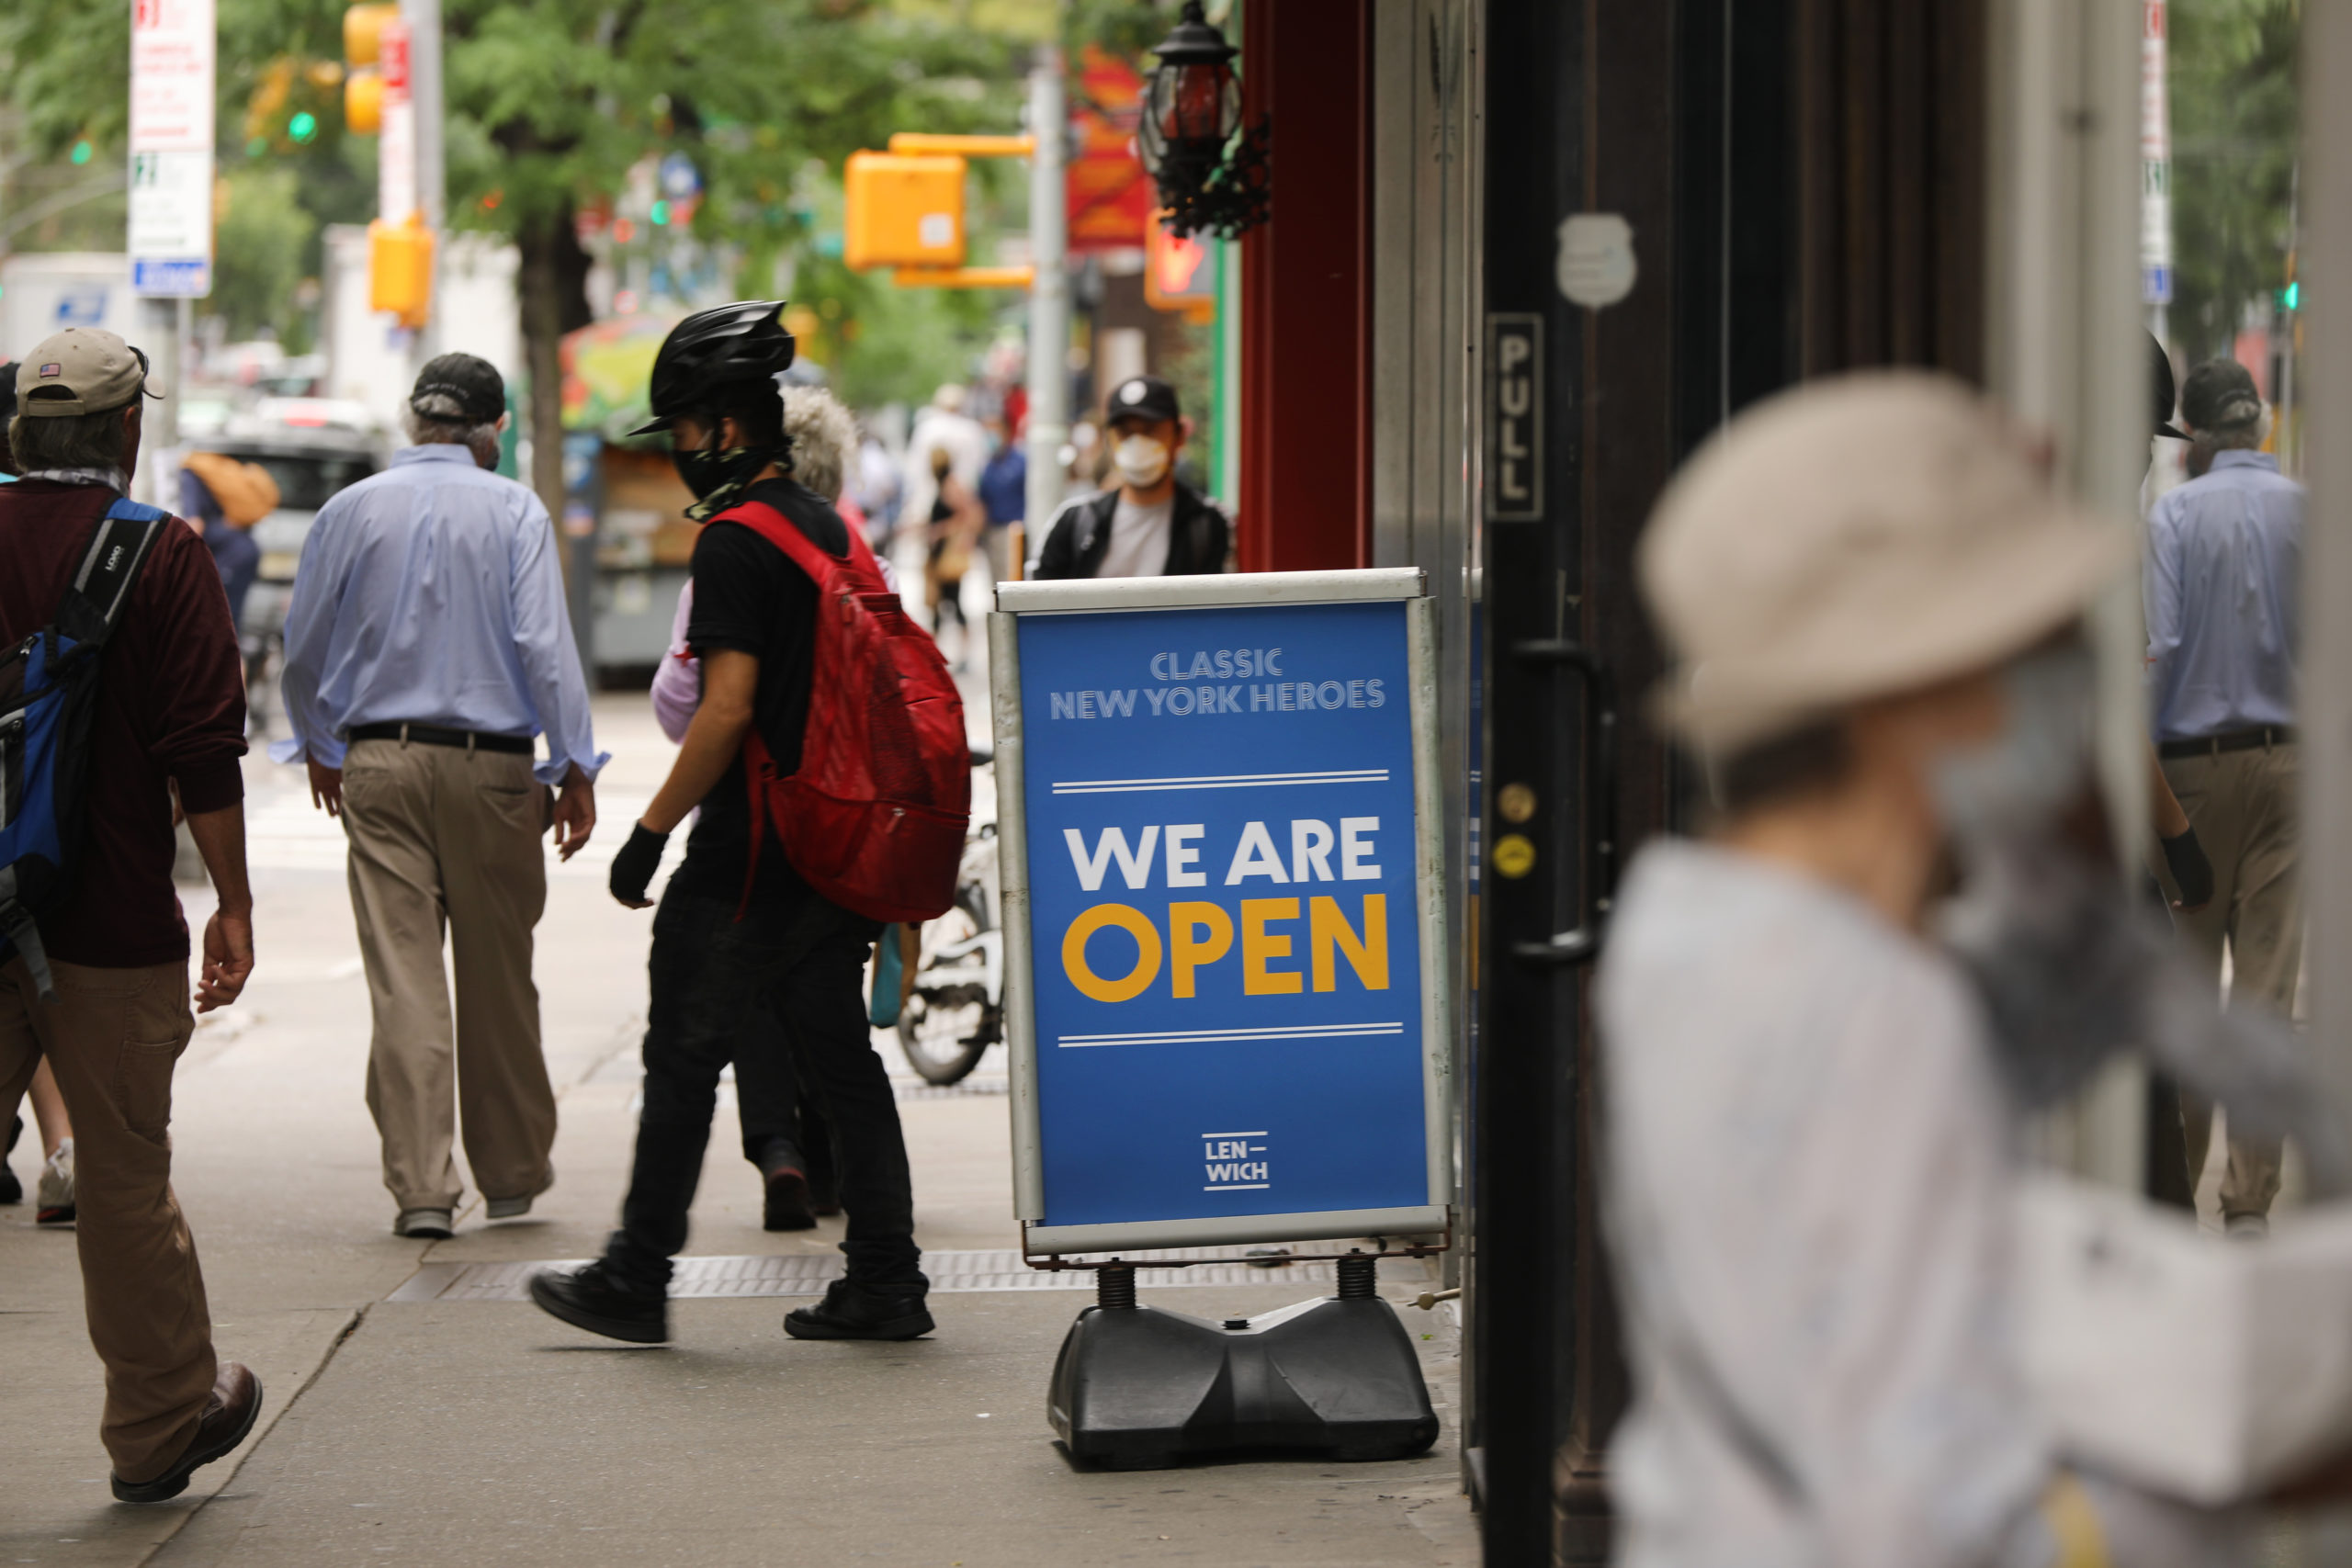 People walk on the streets of New York City in June as businesses reopen. (Spencer Platt/Getty Images)